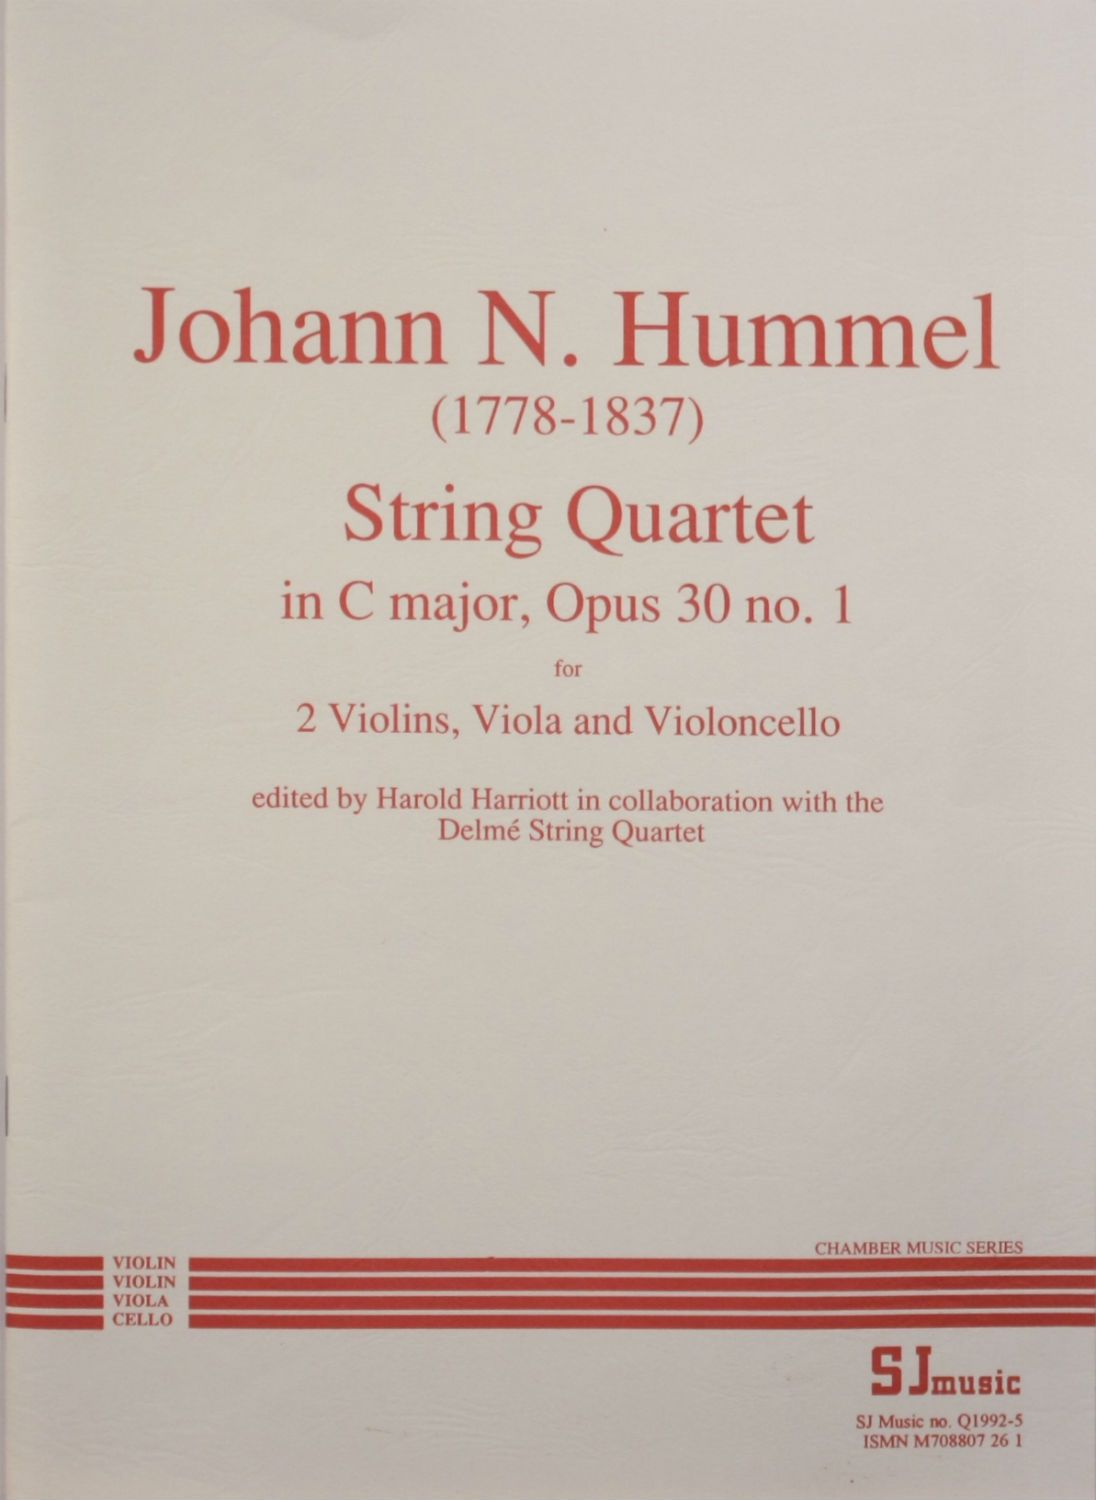 Hummel: String Quartet in C Major, Op. 30, No. 1